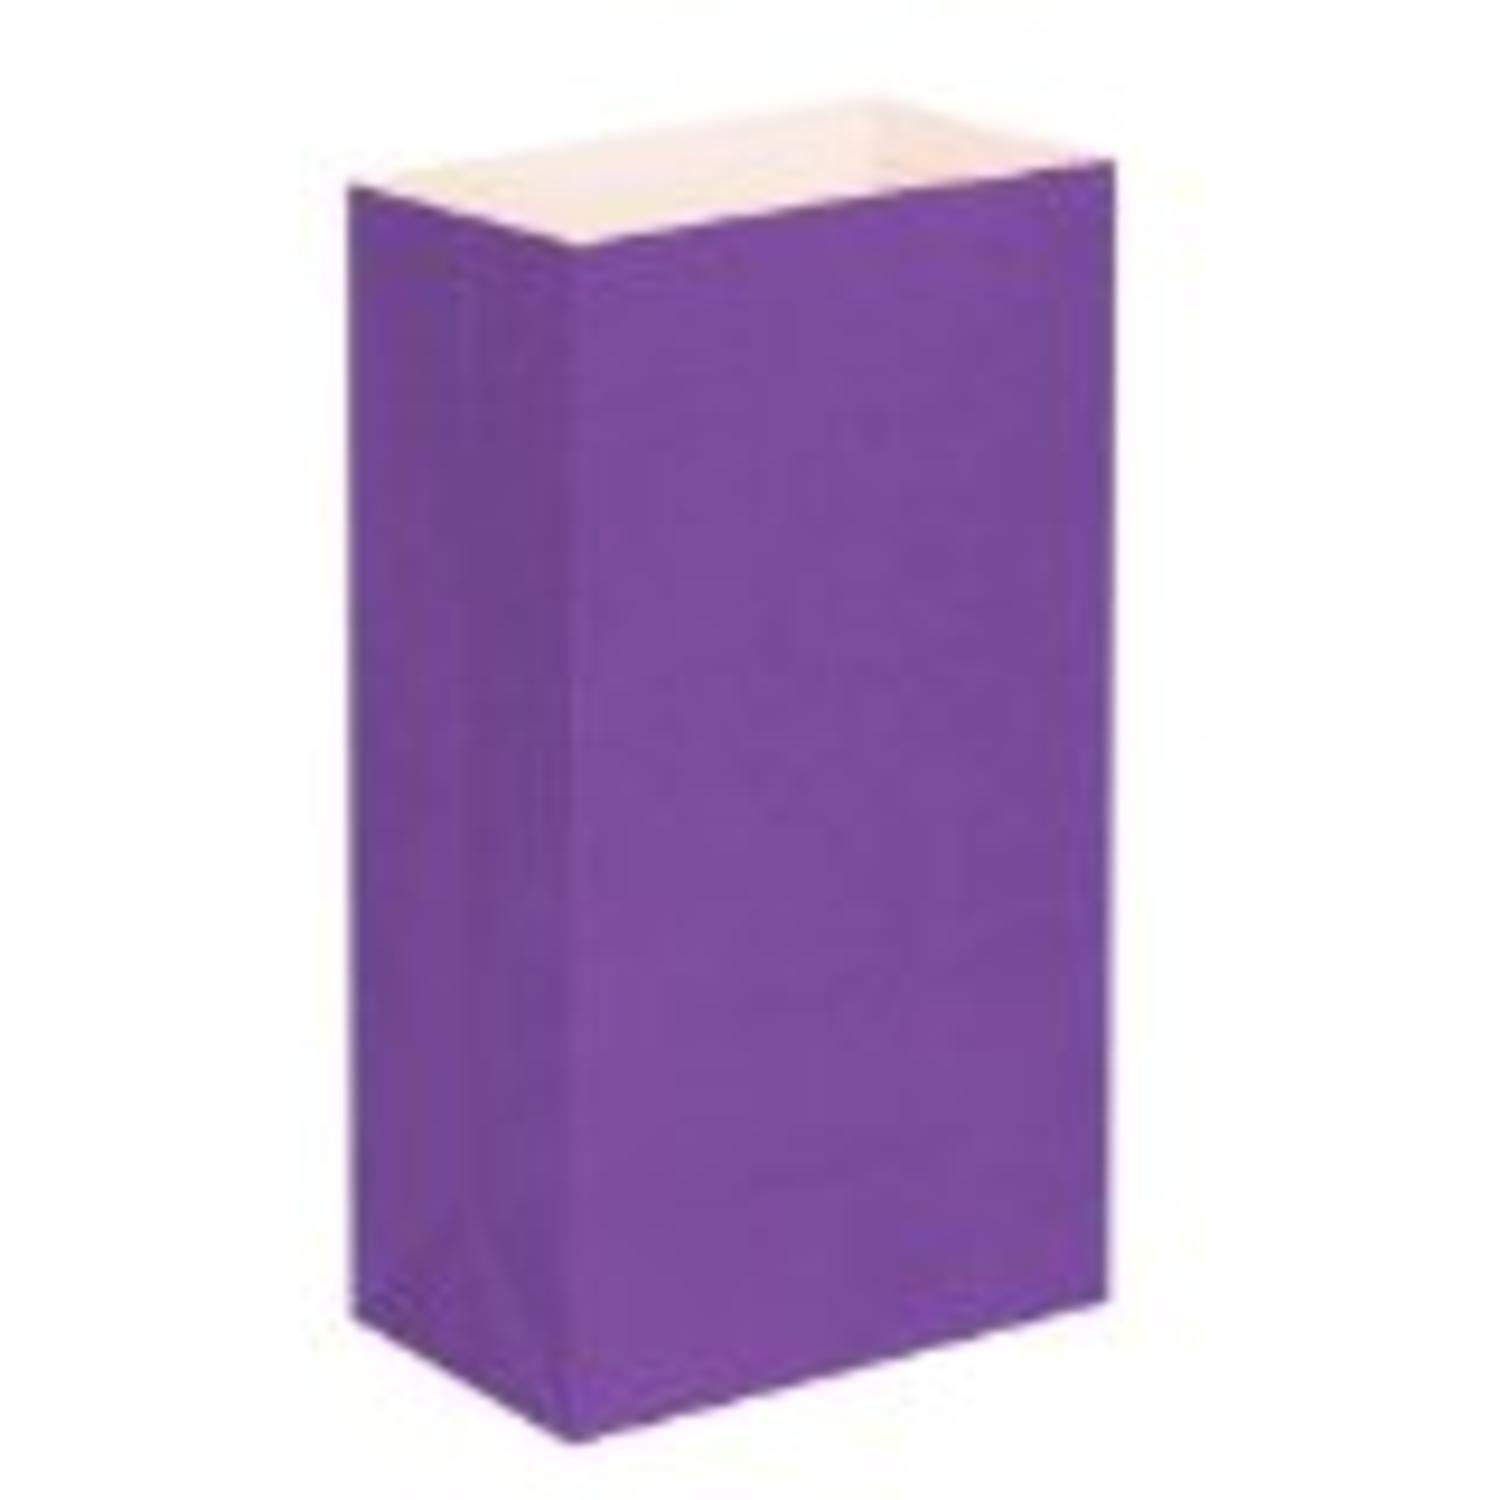 CC Home Furnishings Pack of 100 Traditional Purple Relay for Life Luminaria Bags 11'' by CC Home Furnishings (Image #1)